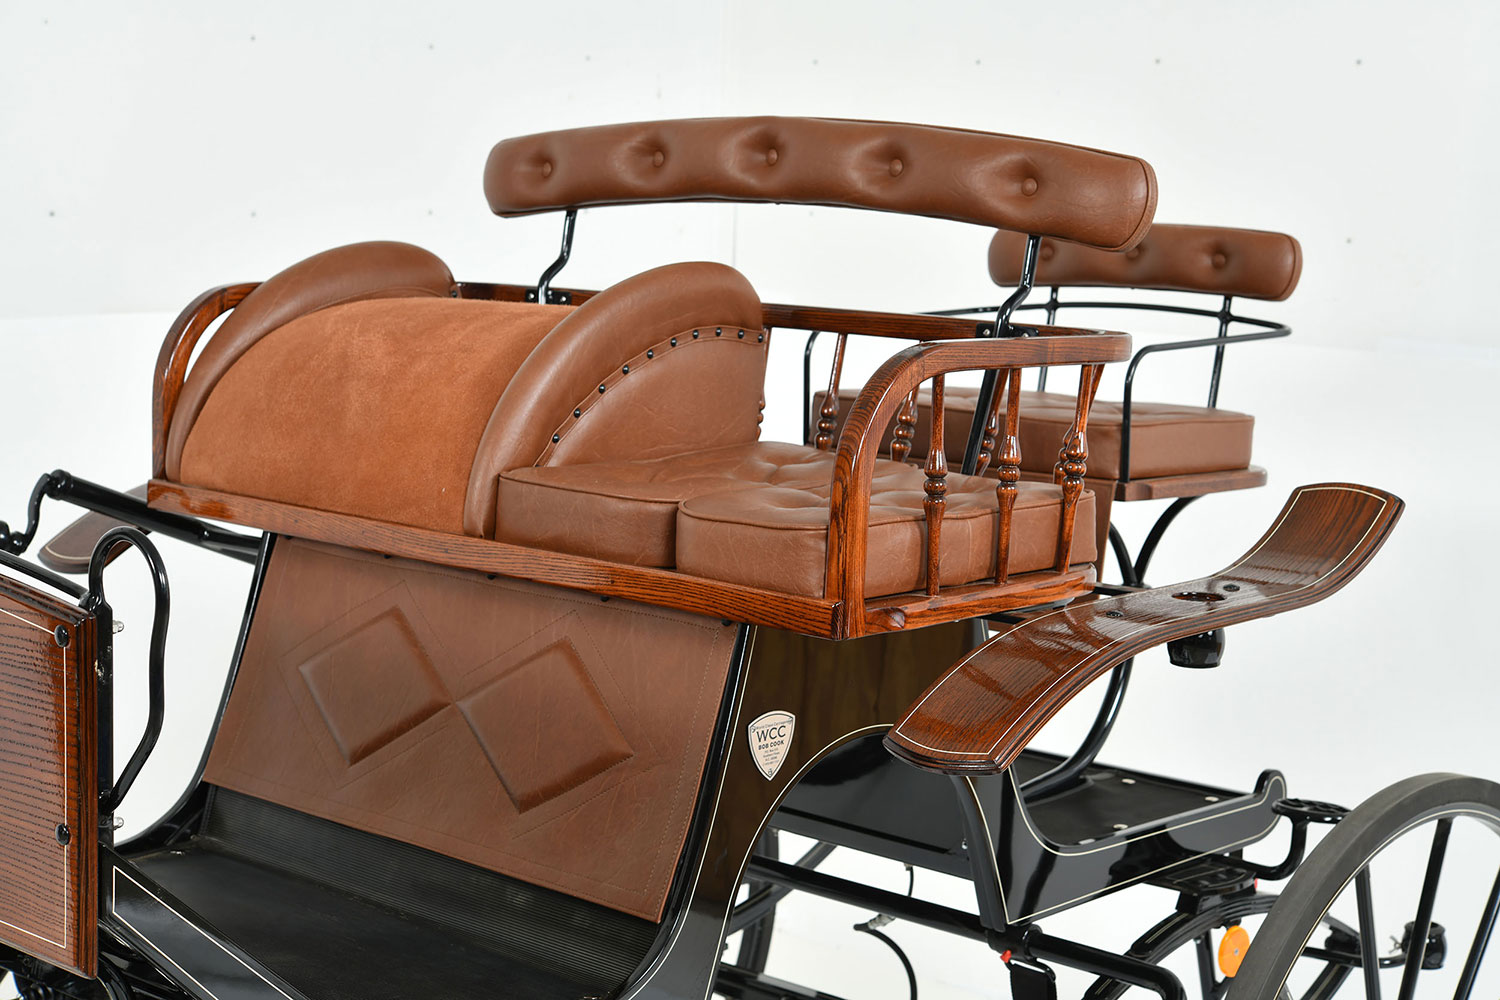 WCC Deluxe Spyder - Spindle Seat Carriage